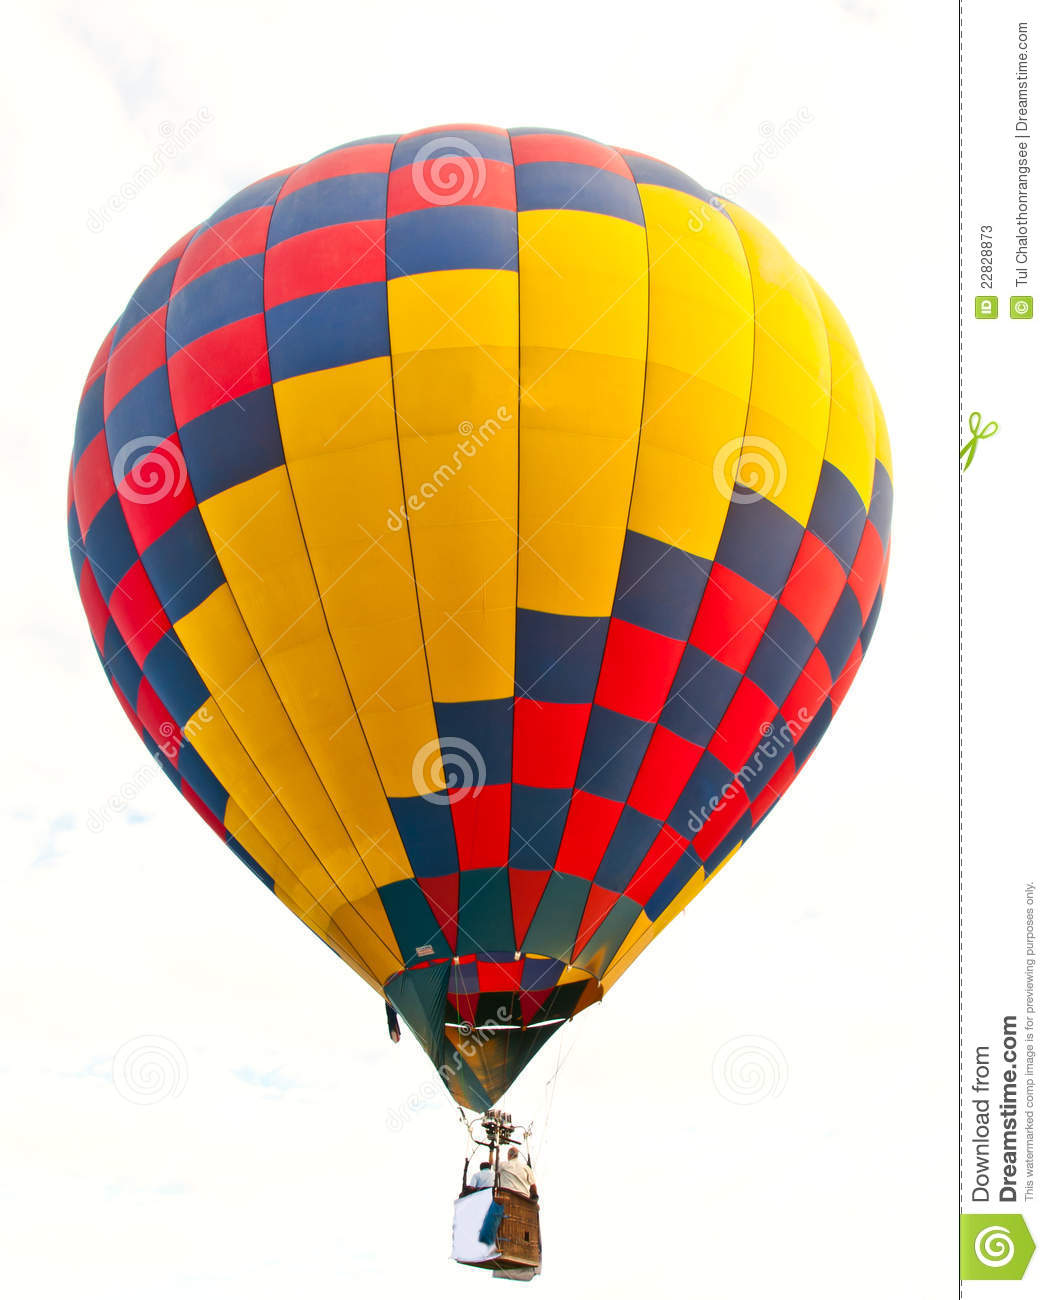 Colorful Hot Air Balloon Stock Photos - Image: 22828873